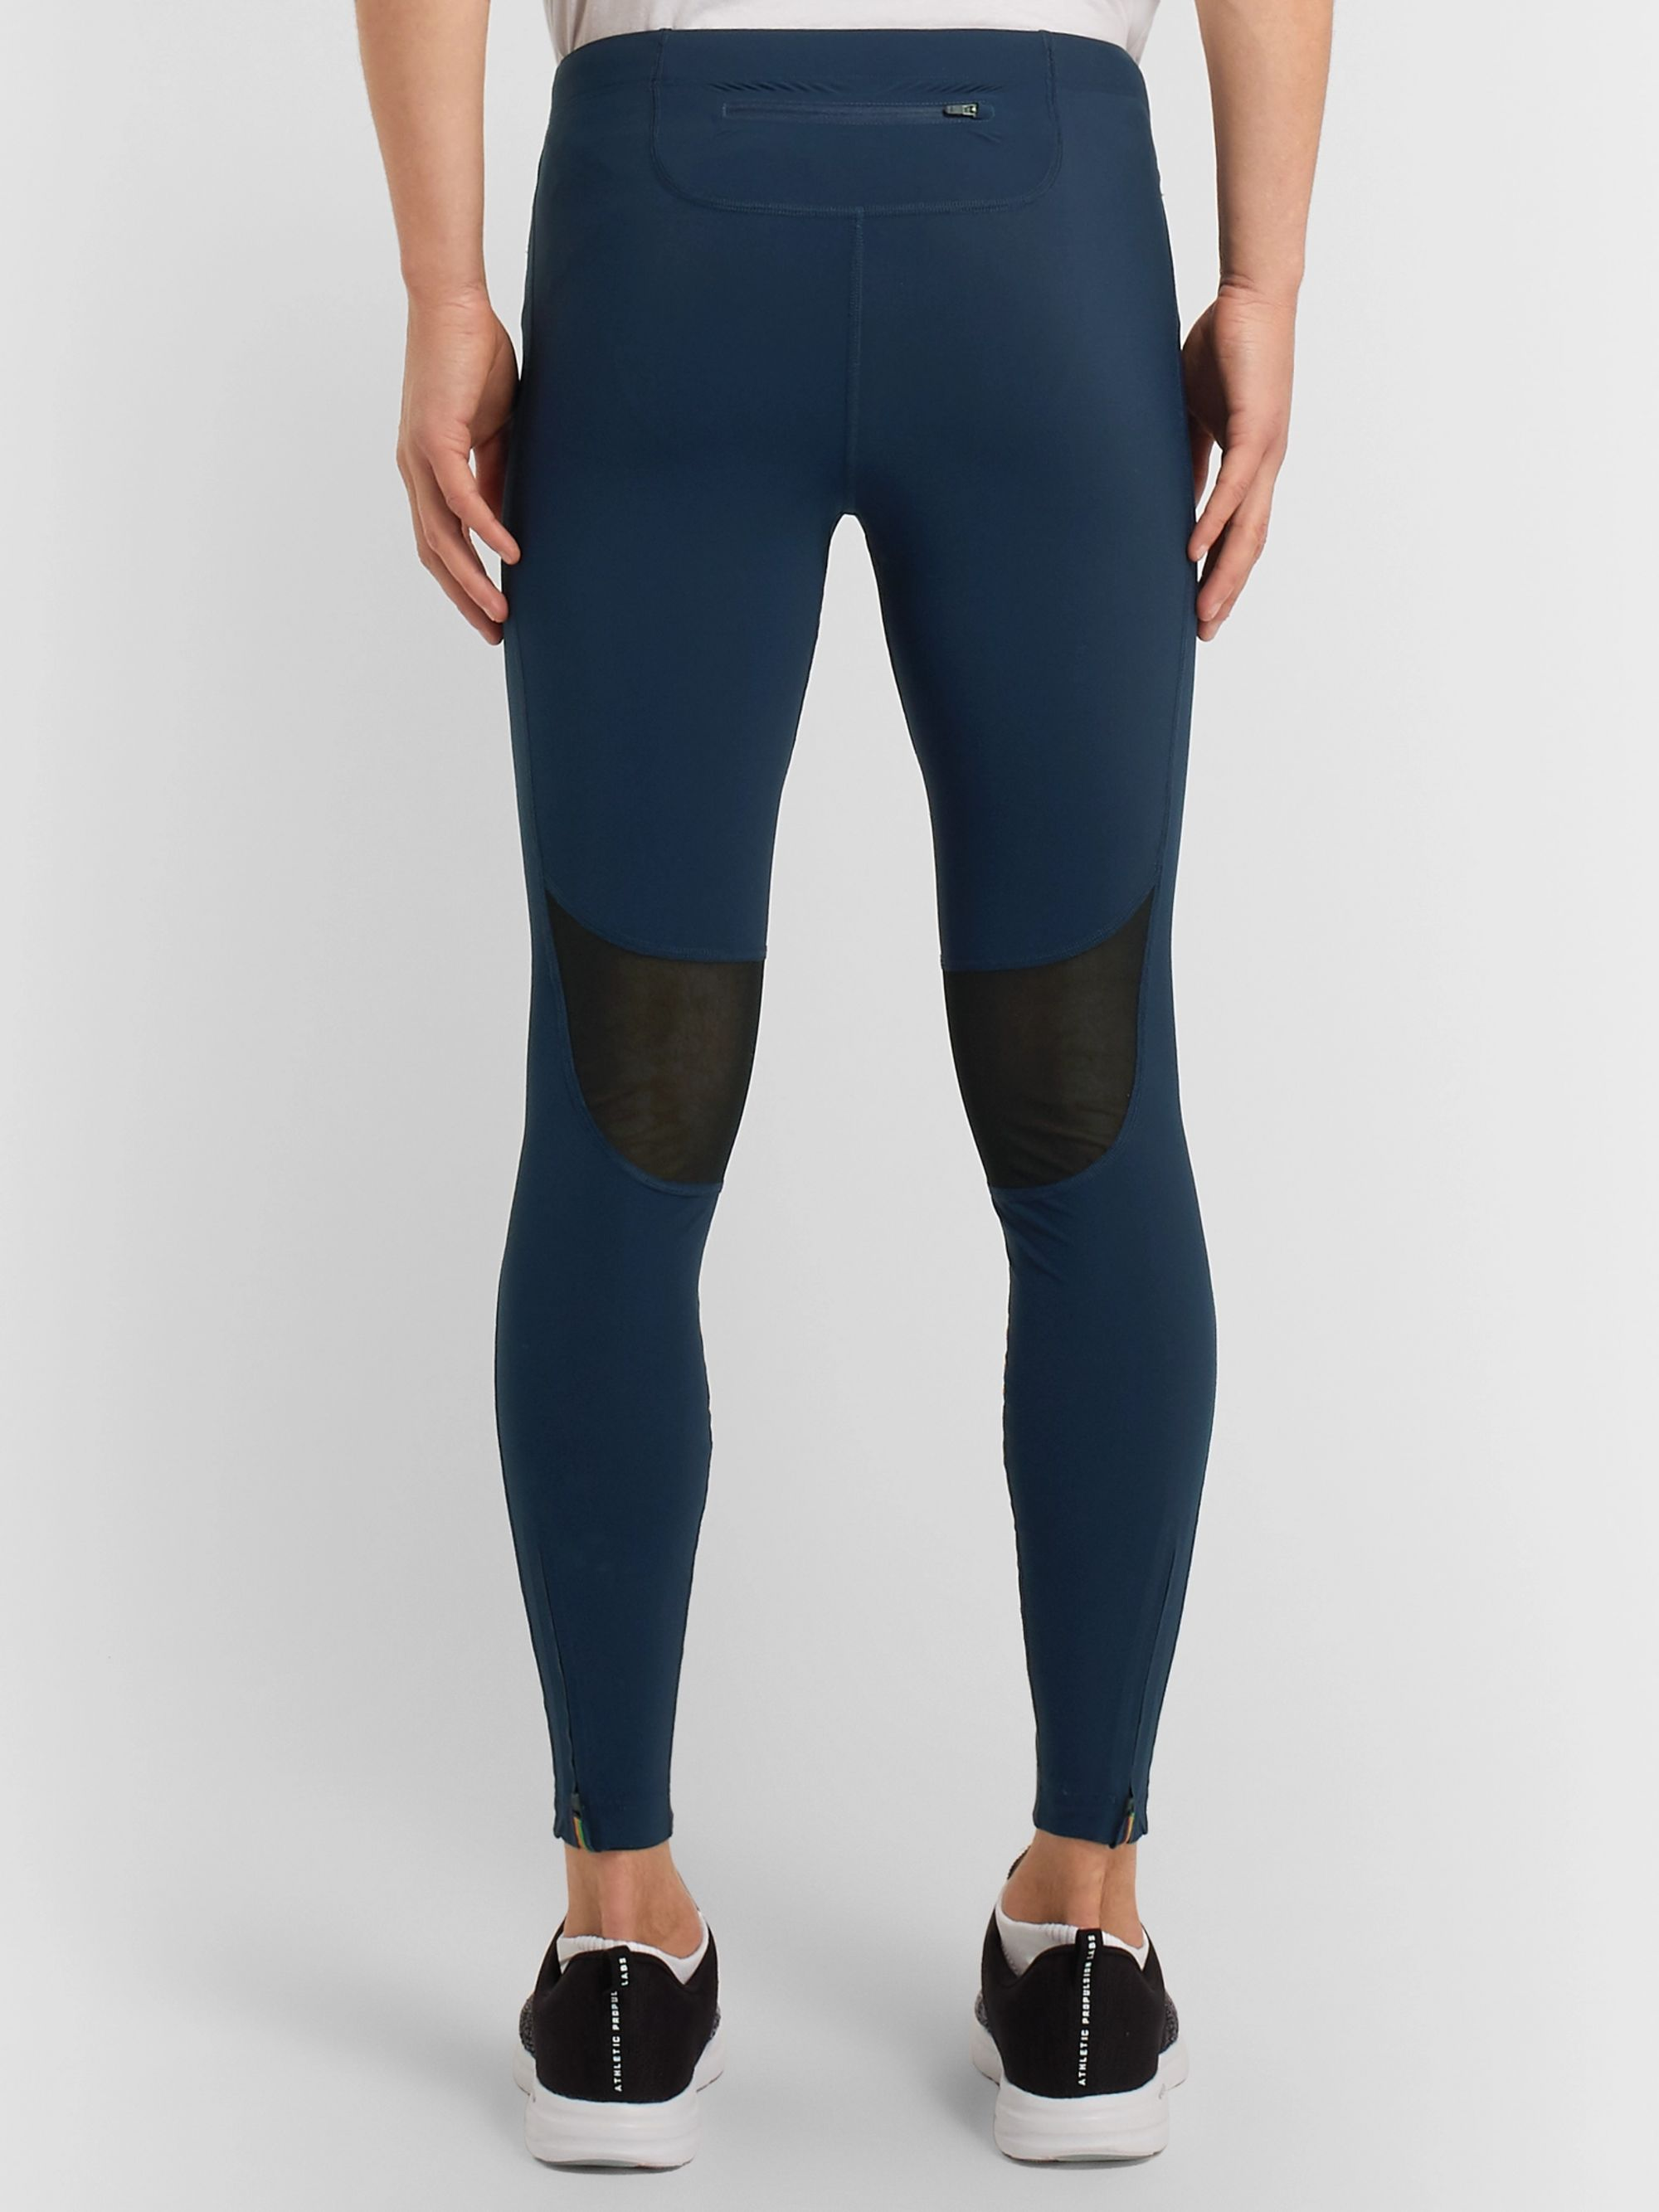 Iffley Road Windsor Stretch-Jersey Compression Tights